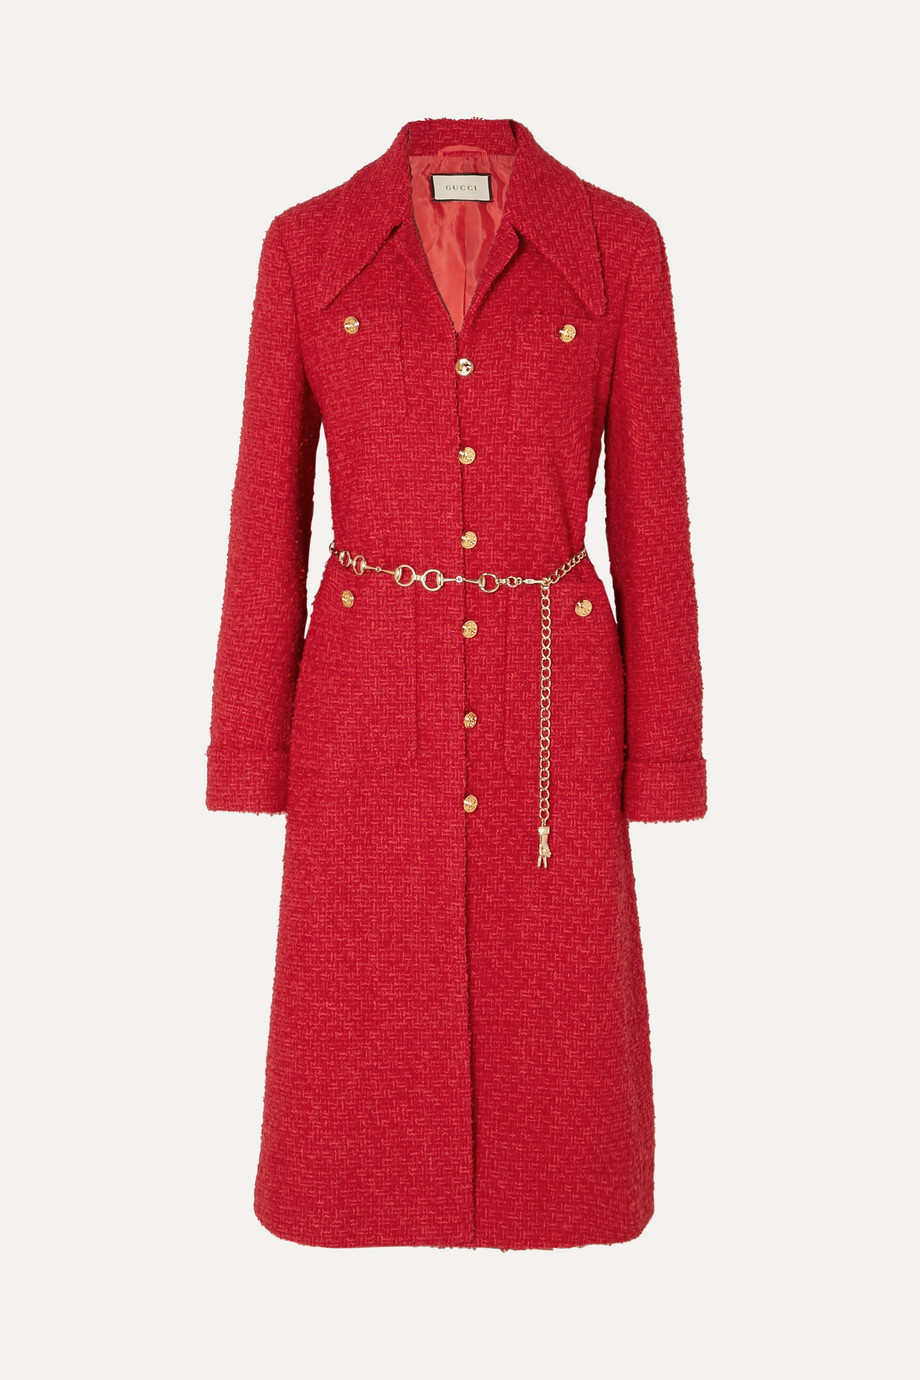 Gucci Belted tweed coat